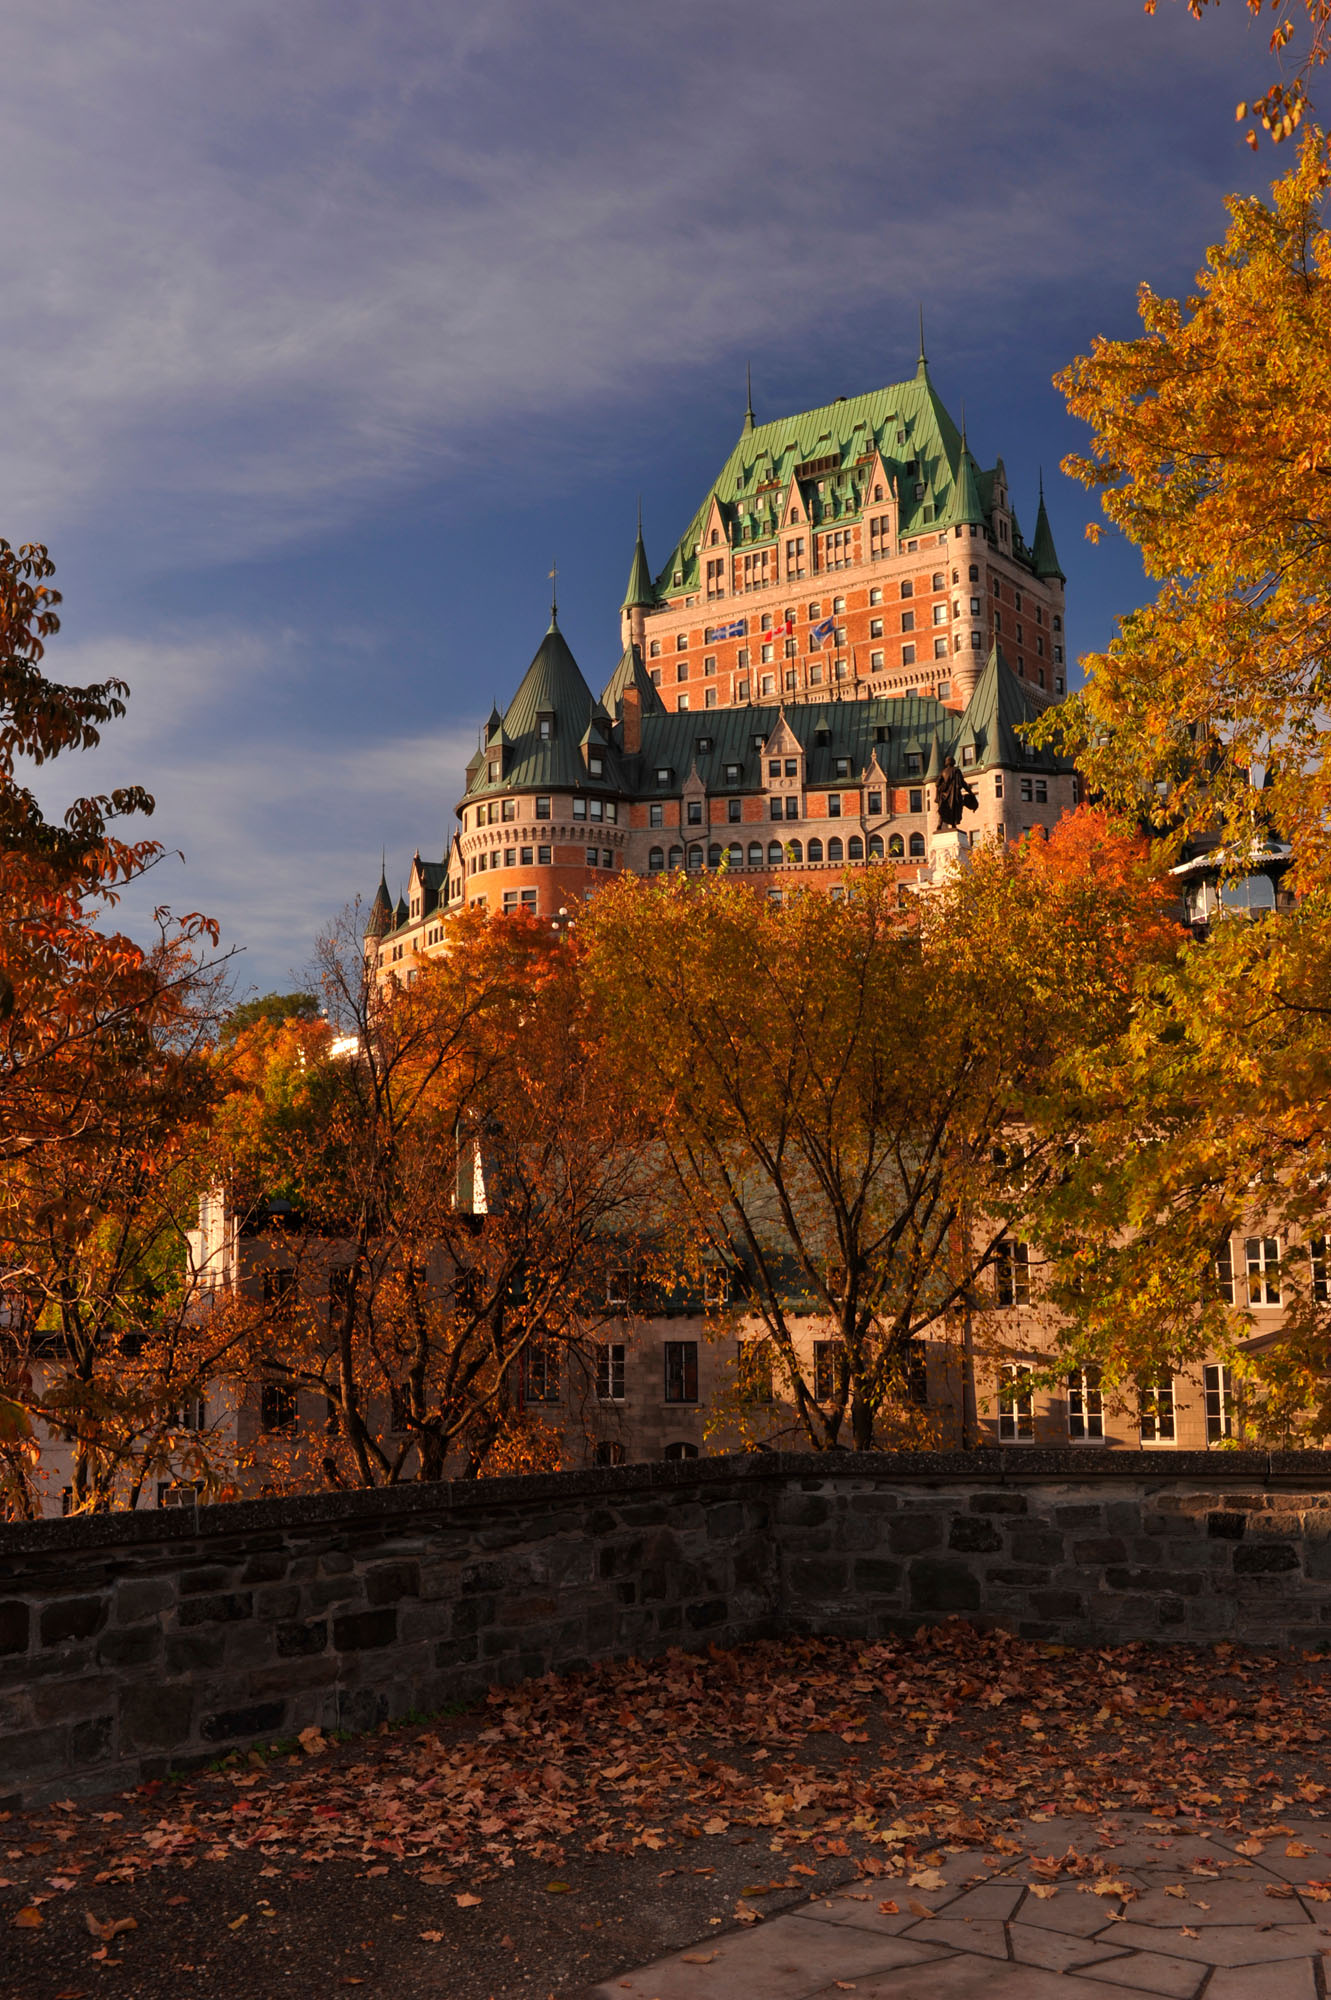 The striking Château Frontenac hotel in Quebec, during the fall.